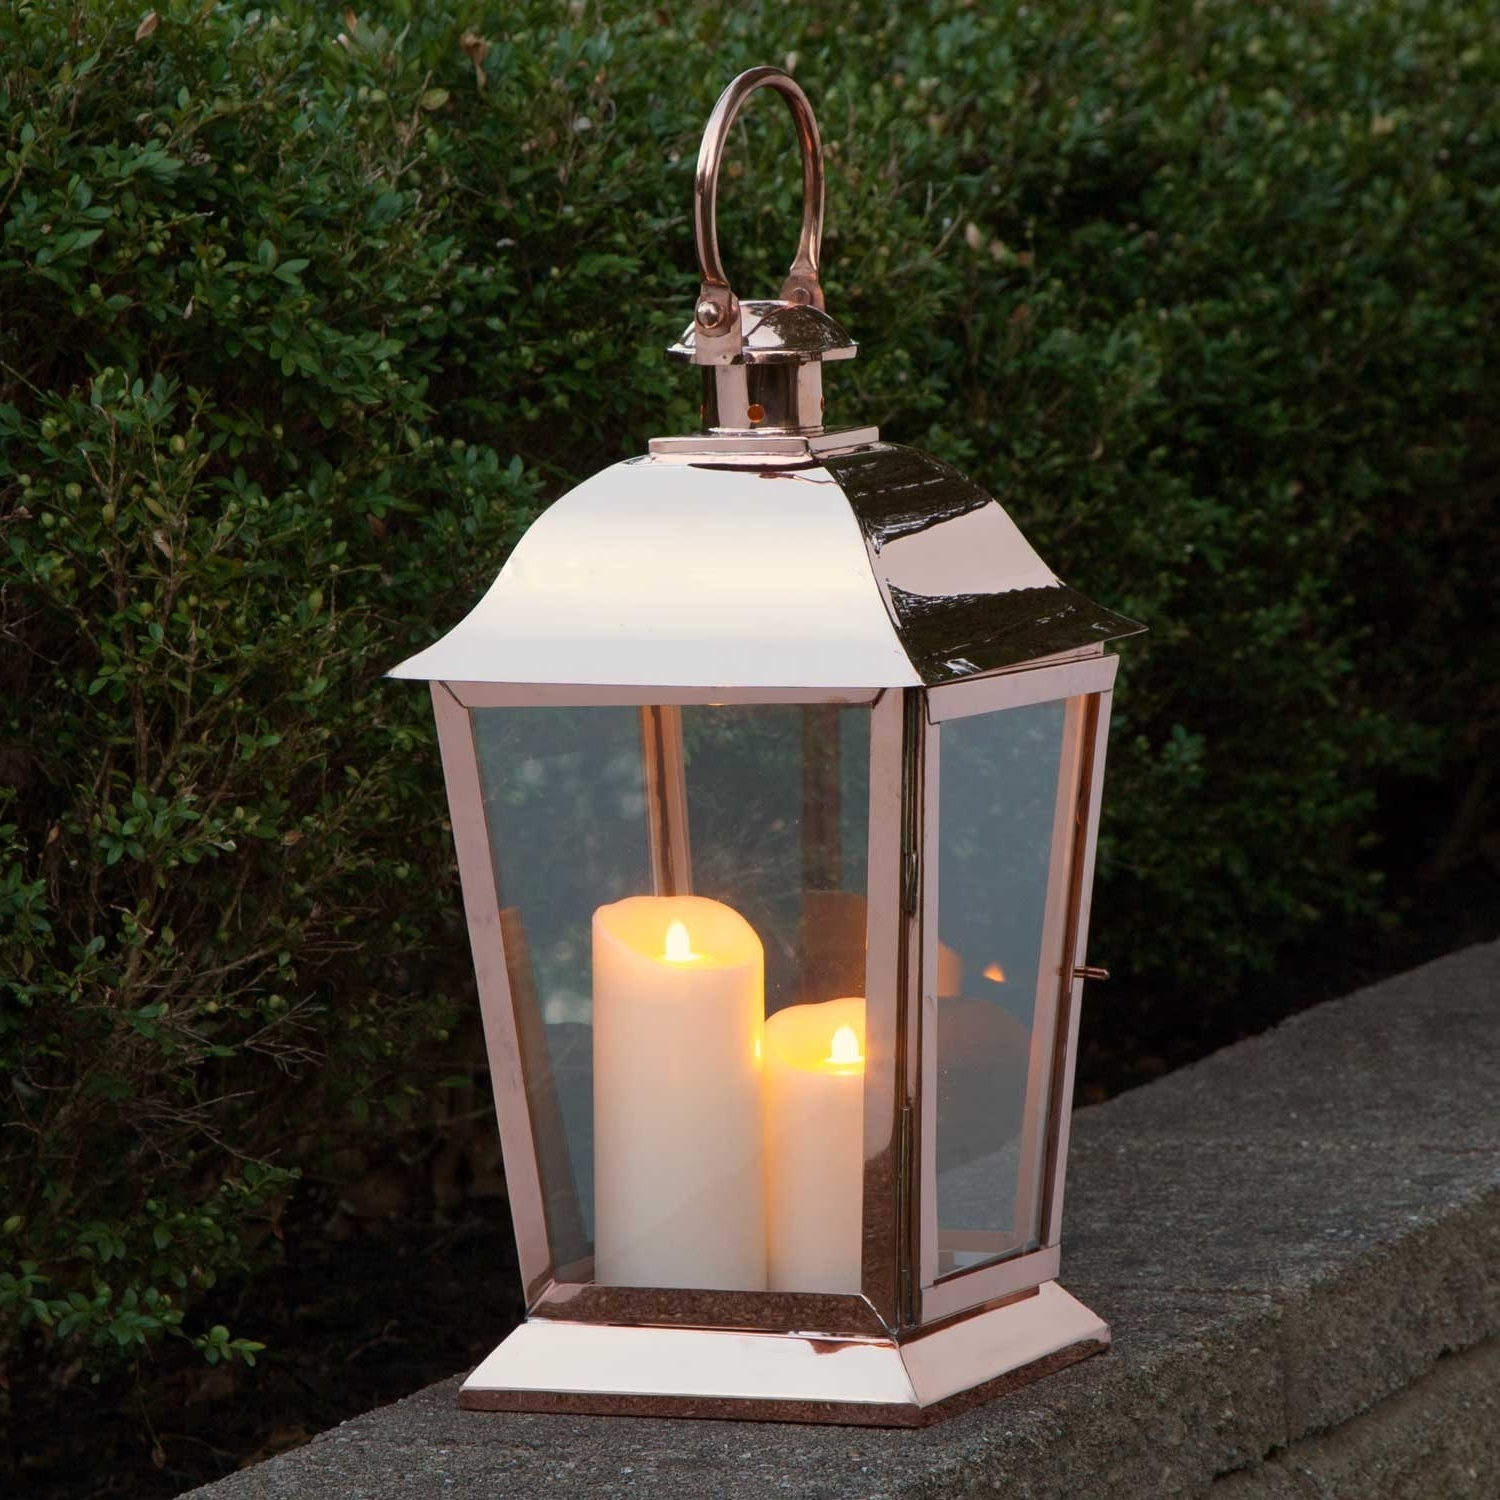 50 Patio Lantern, Genoa Antique Black Silver Hanging Garden Lantern Inside Fashionable Outdoor Candle Lanterns For Patio (View 1 of 20)